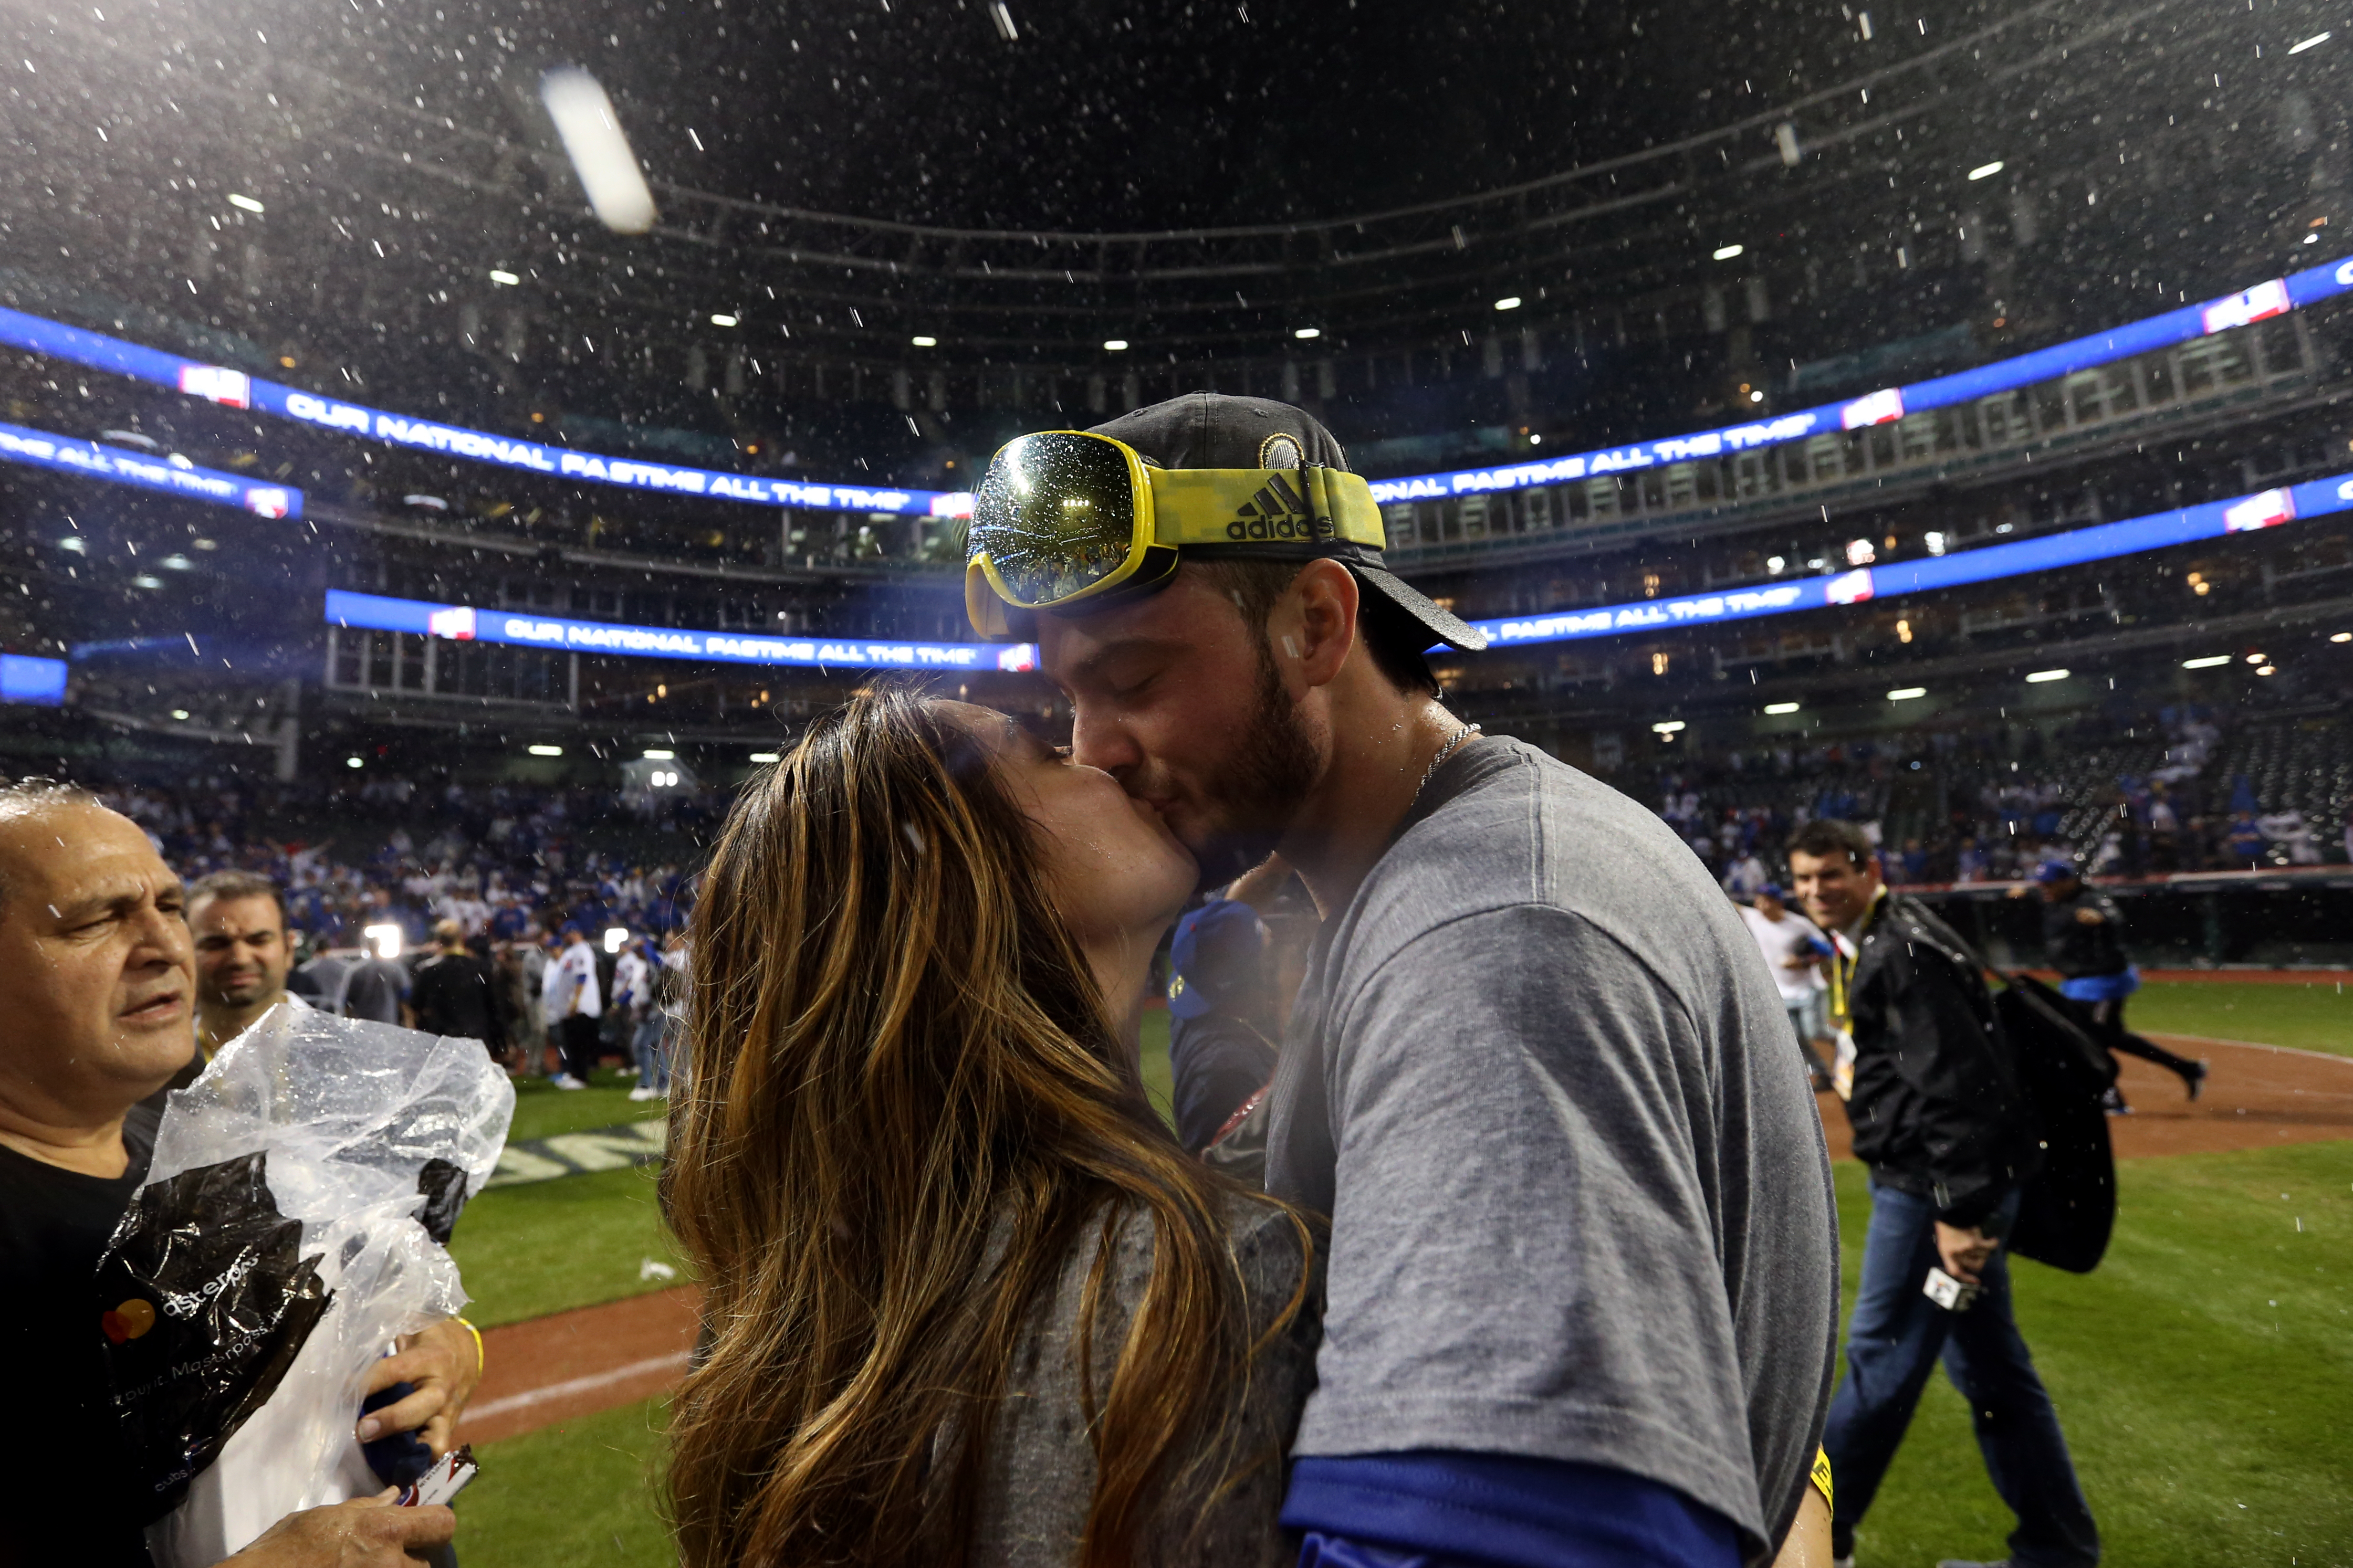 Kris Bryant sent thank you notes to fans who bought him wedding gifts